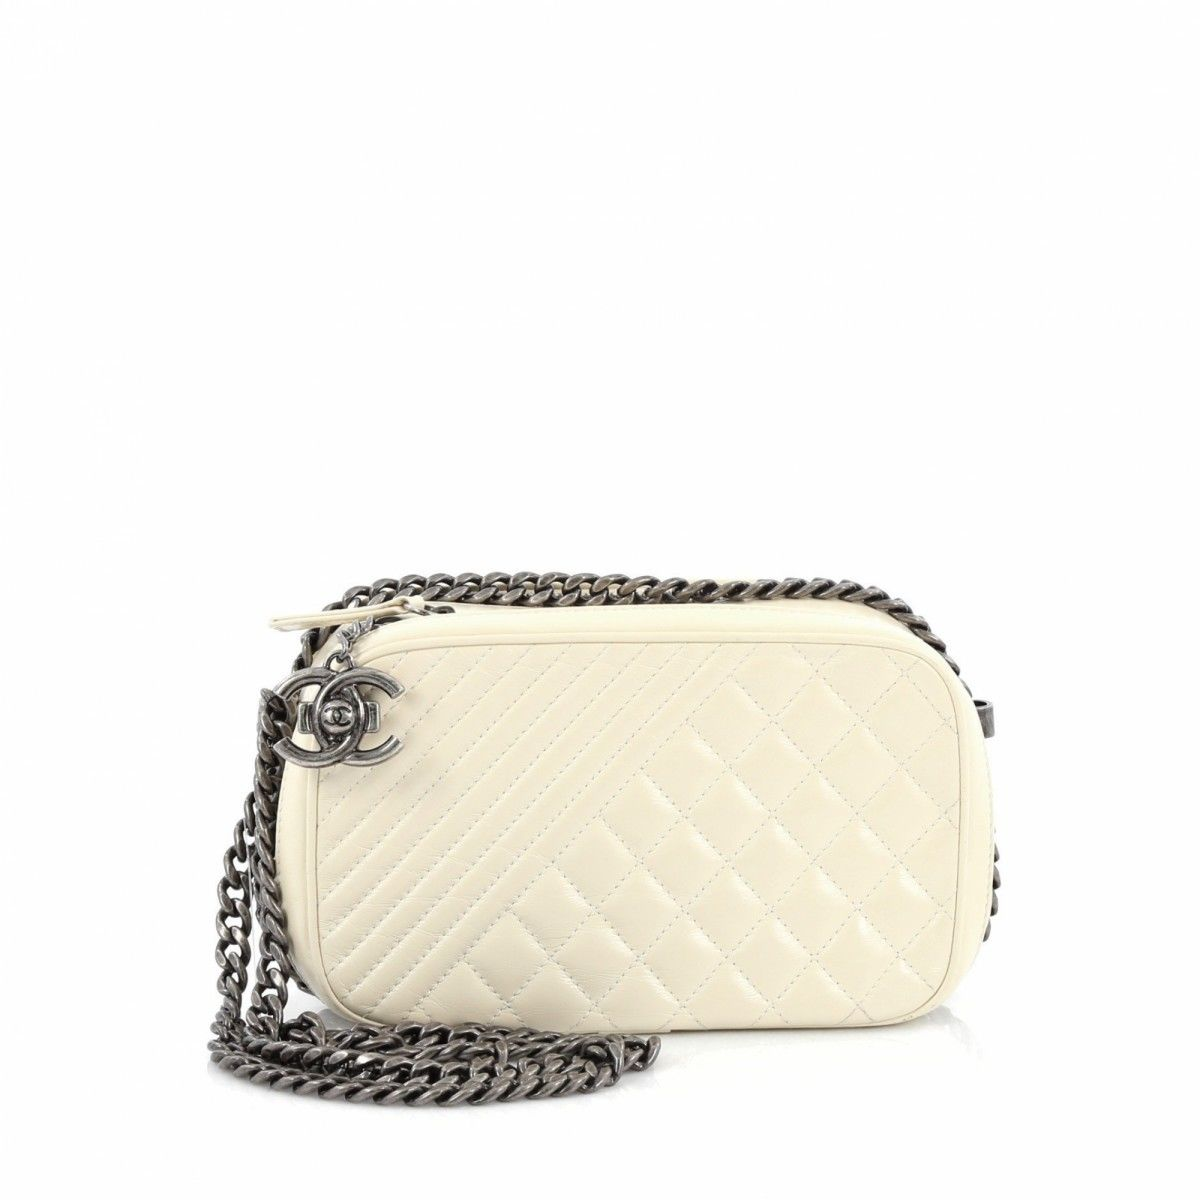 f00ea2d5fbe8d3 Chanel Coco Boy Camera Bag Quilted Leather Small - LXRandCo - Pre-Owned  Luxury Vintage